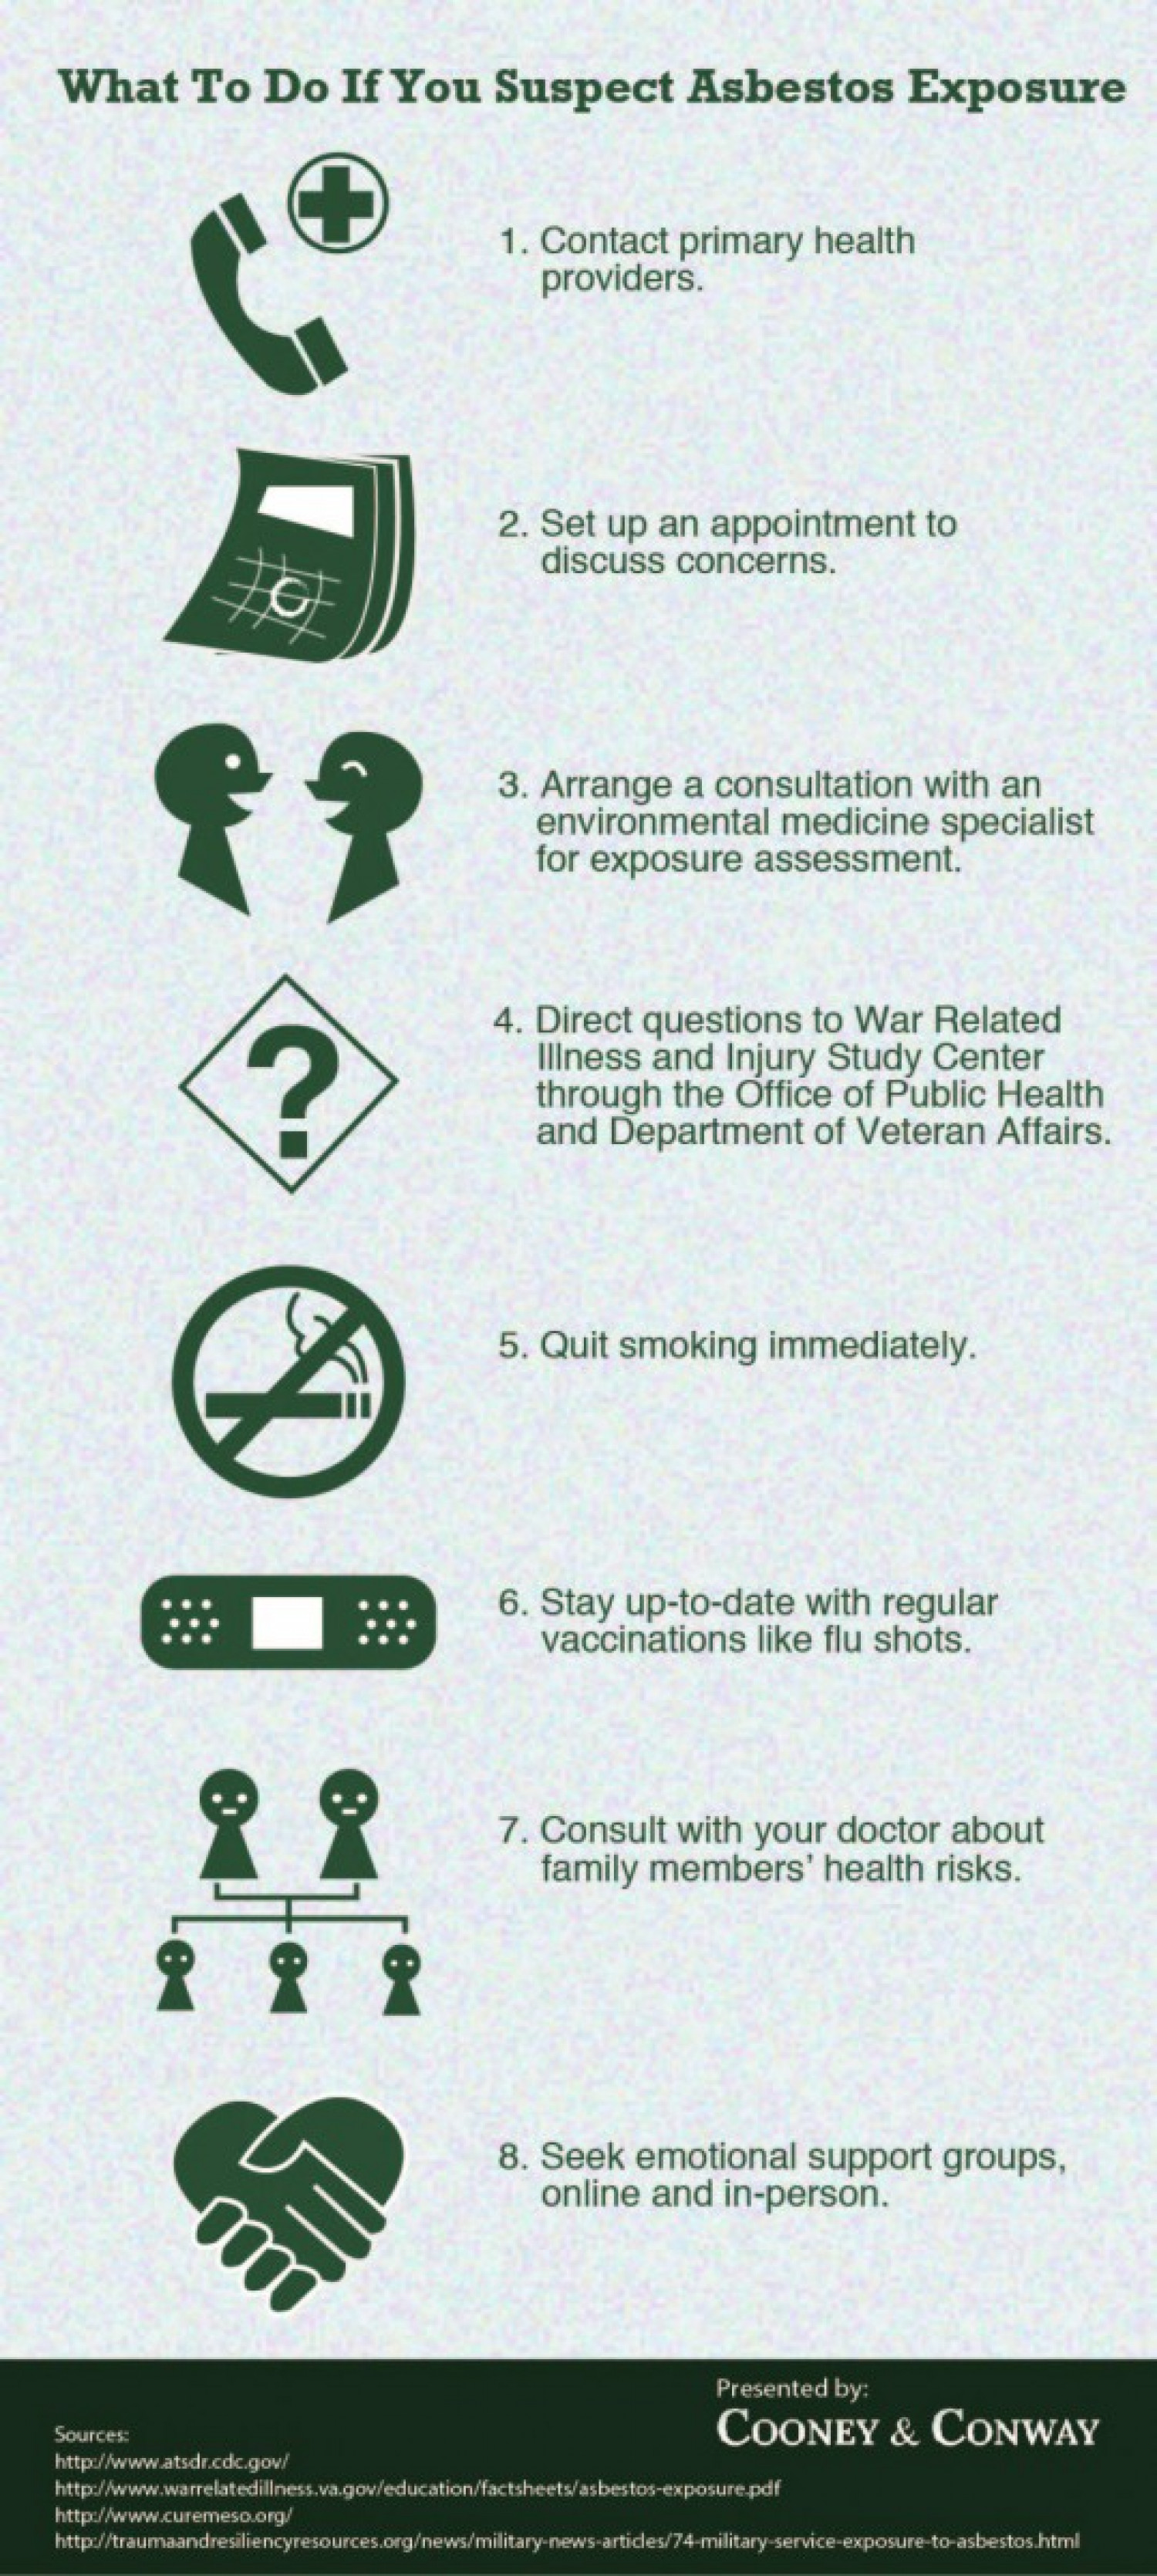 What To Do If You Suspect Asbestos Exposure Infographic